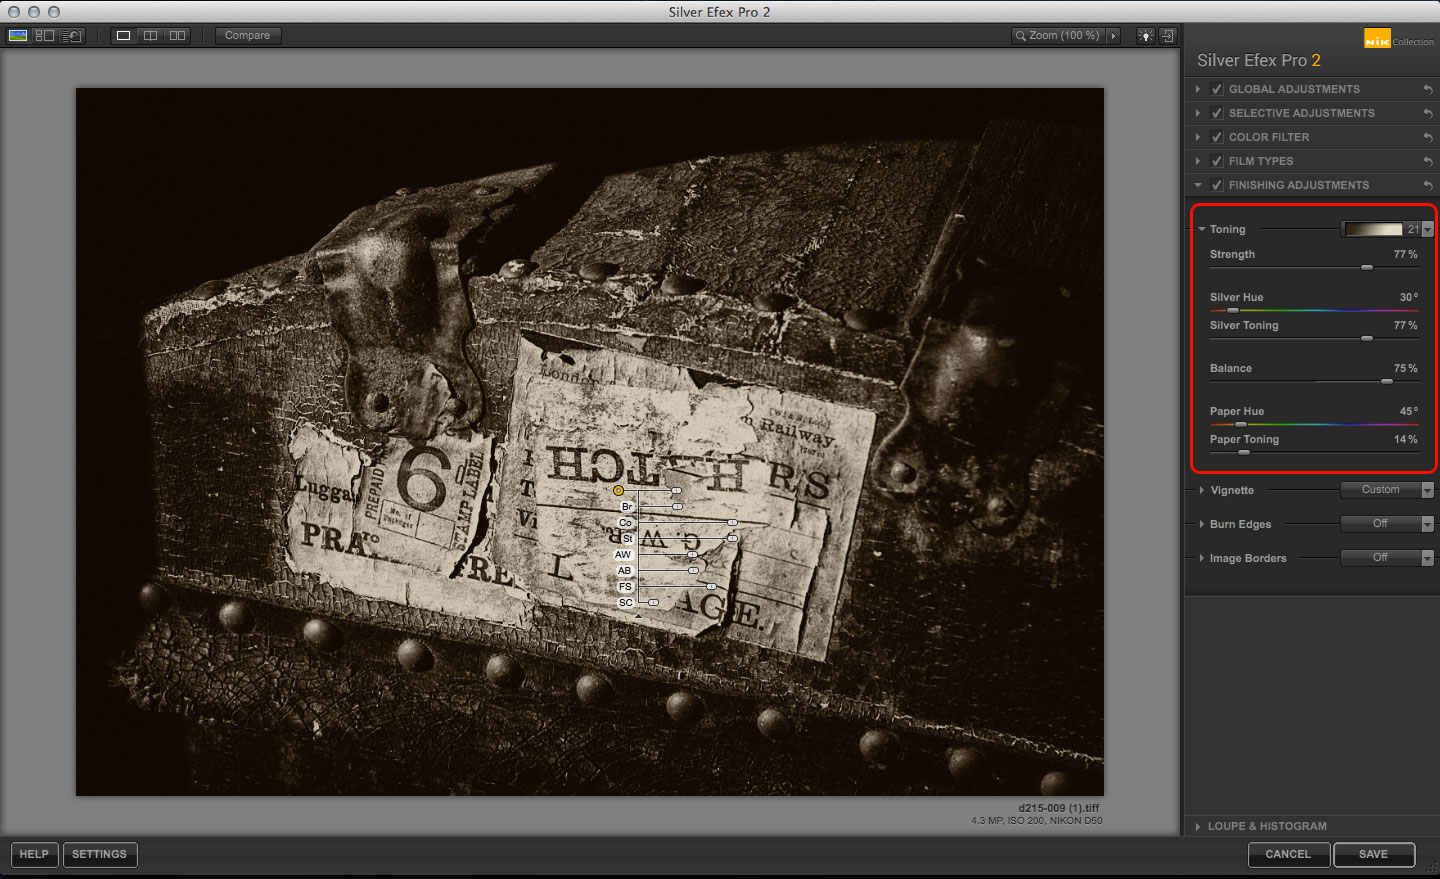 Silver Efex Pro Structure tool